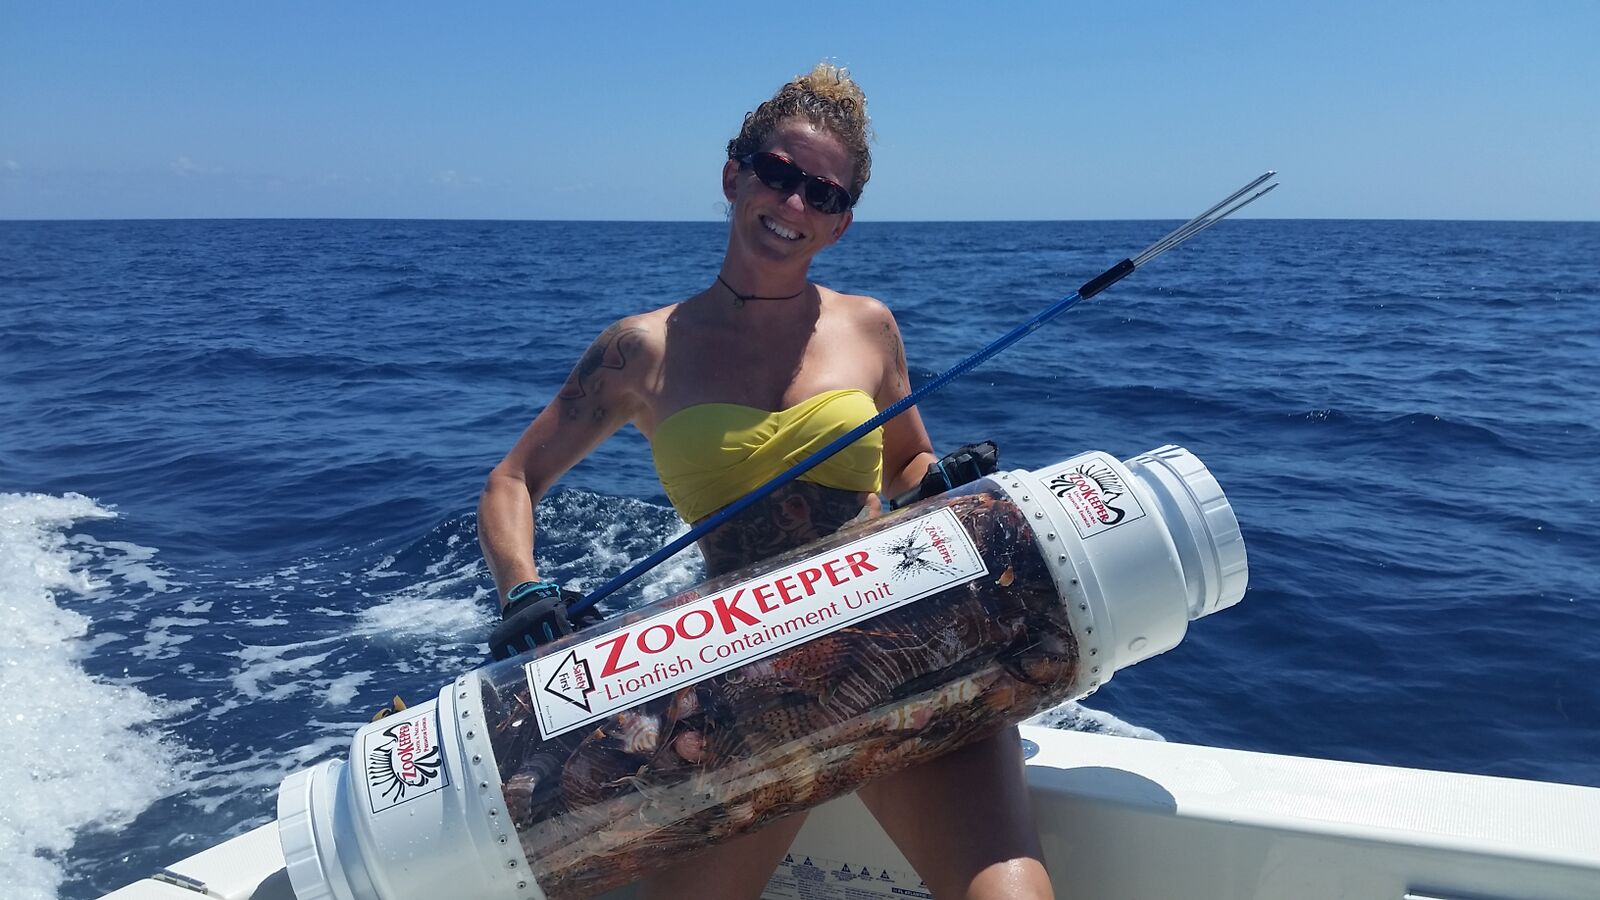 Rachel with her custom Zookeeper full of lionfish